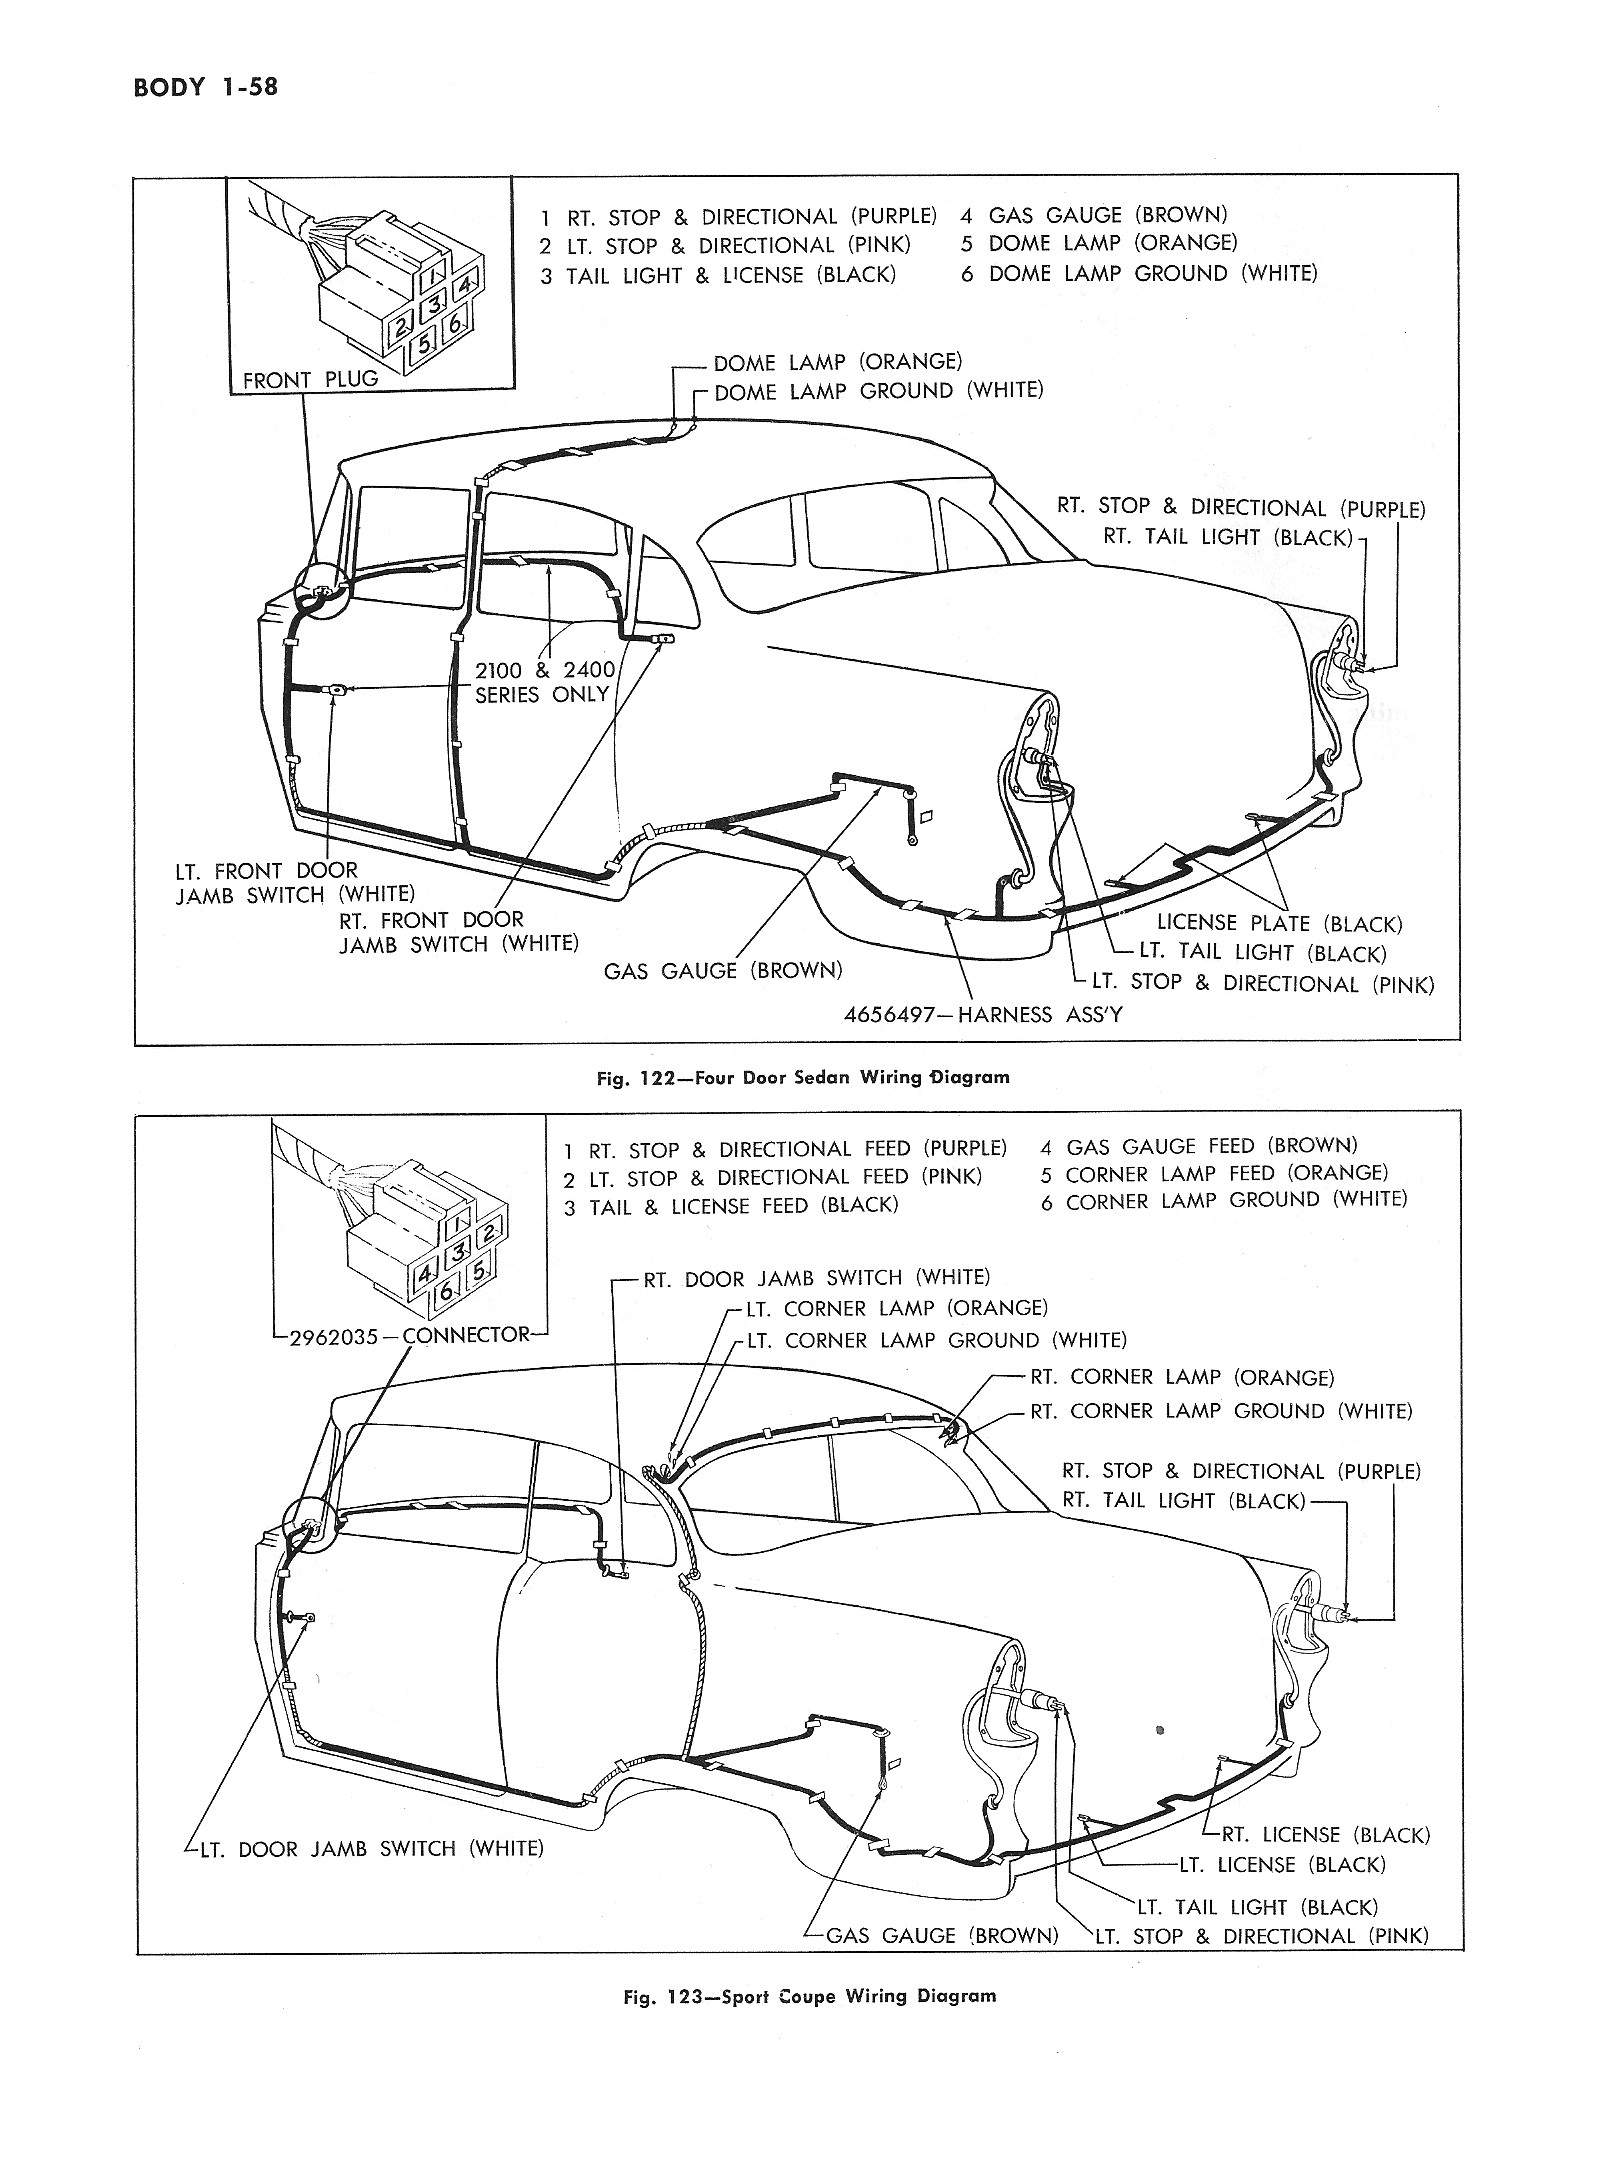 chevy wiring diagrams GM 4 3 Distributor Housing Position 1955 car body wiring 2